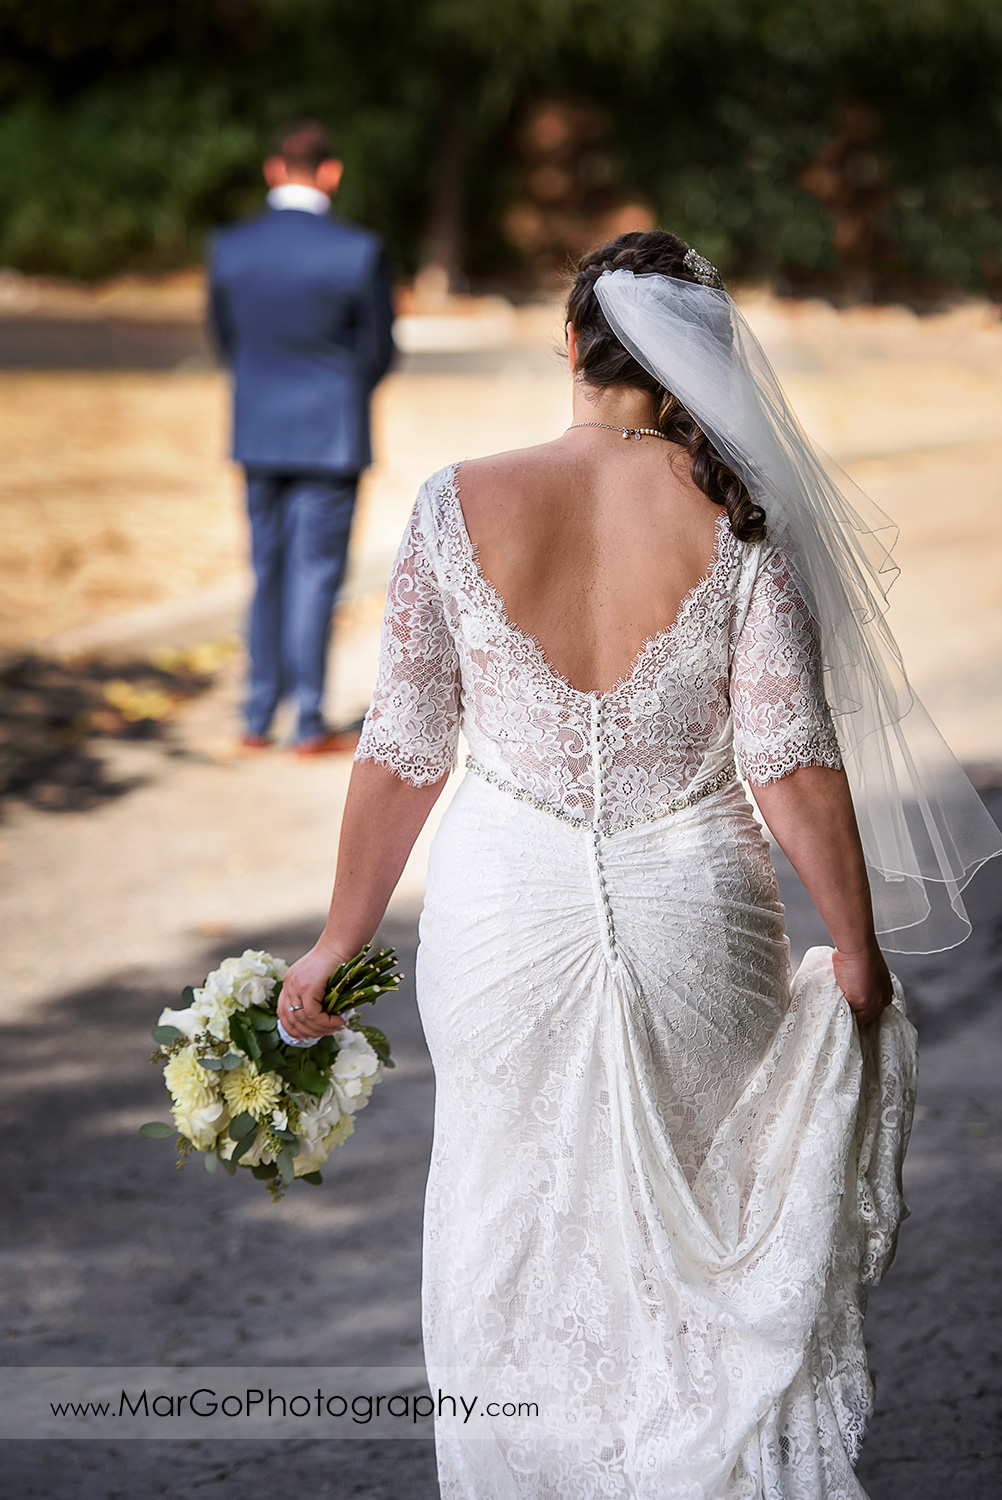 back view of bride approaching the groom during first look at Los Gatos Lodge